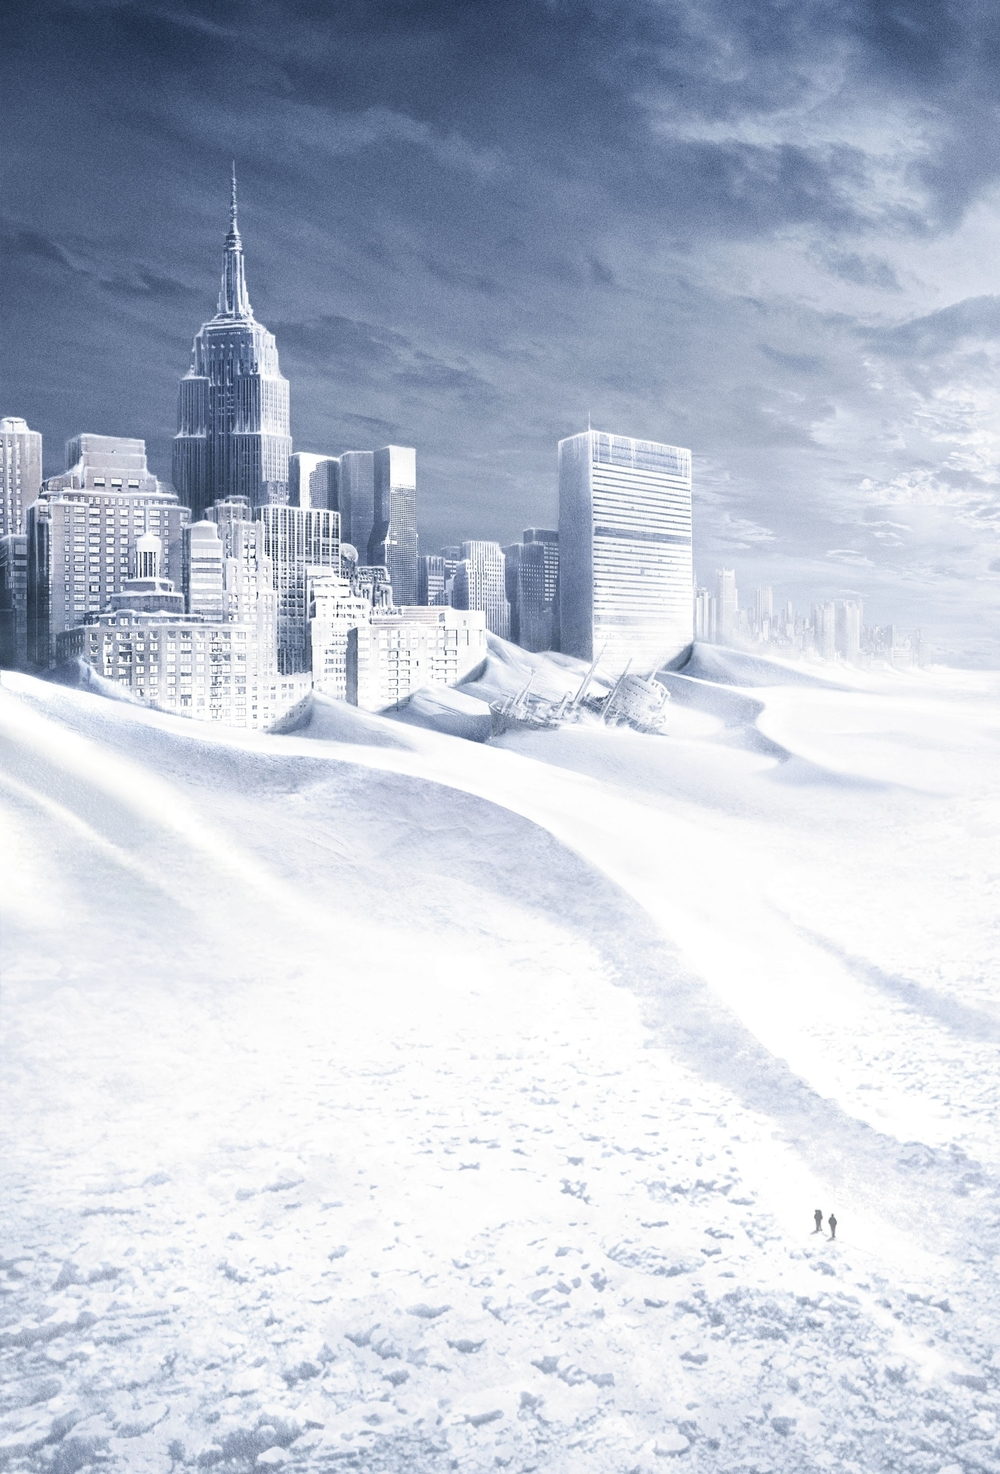 snow_cityscapes_artwork_movie__2035x3000_.jpg